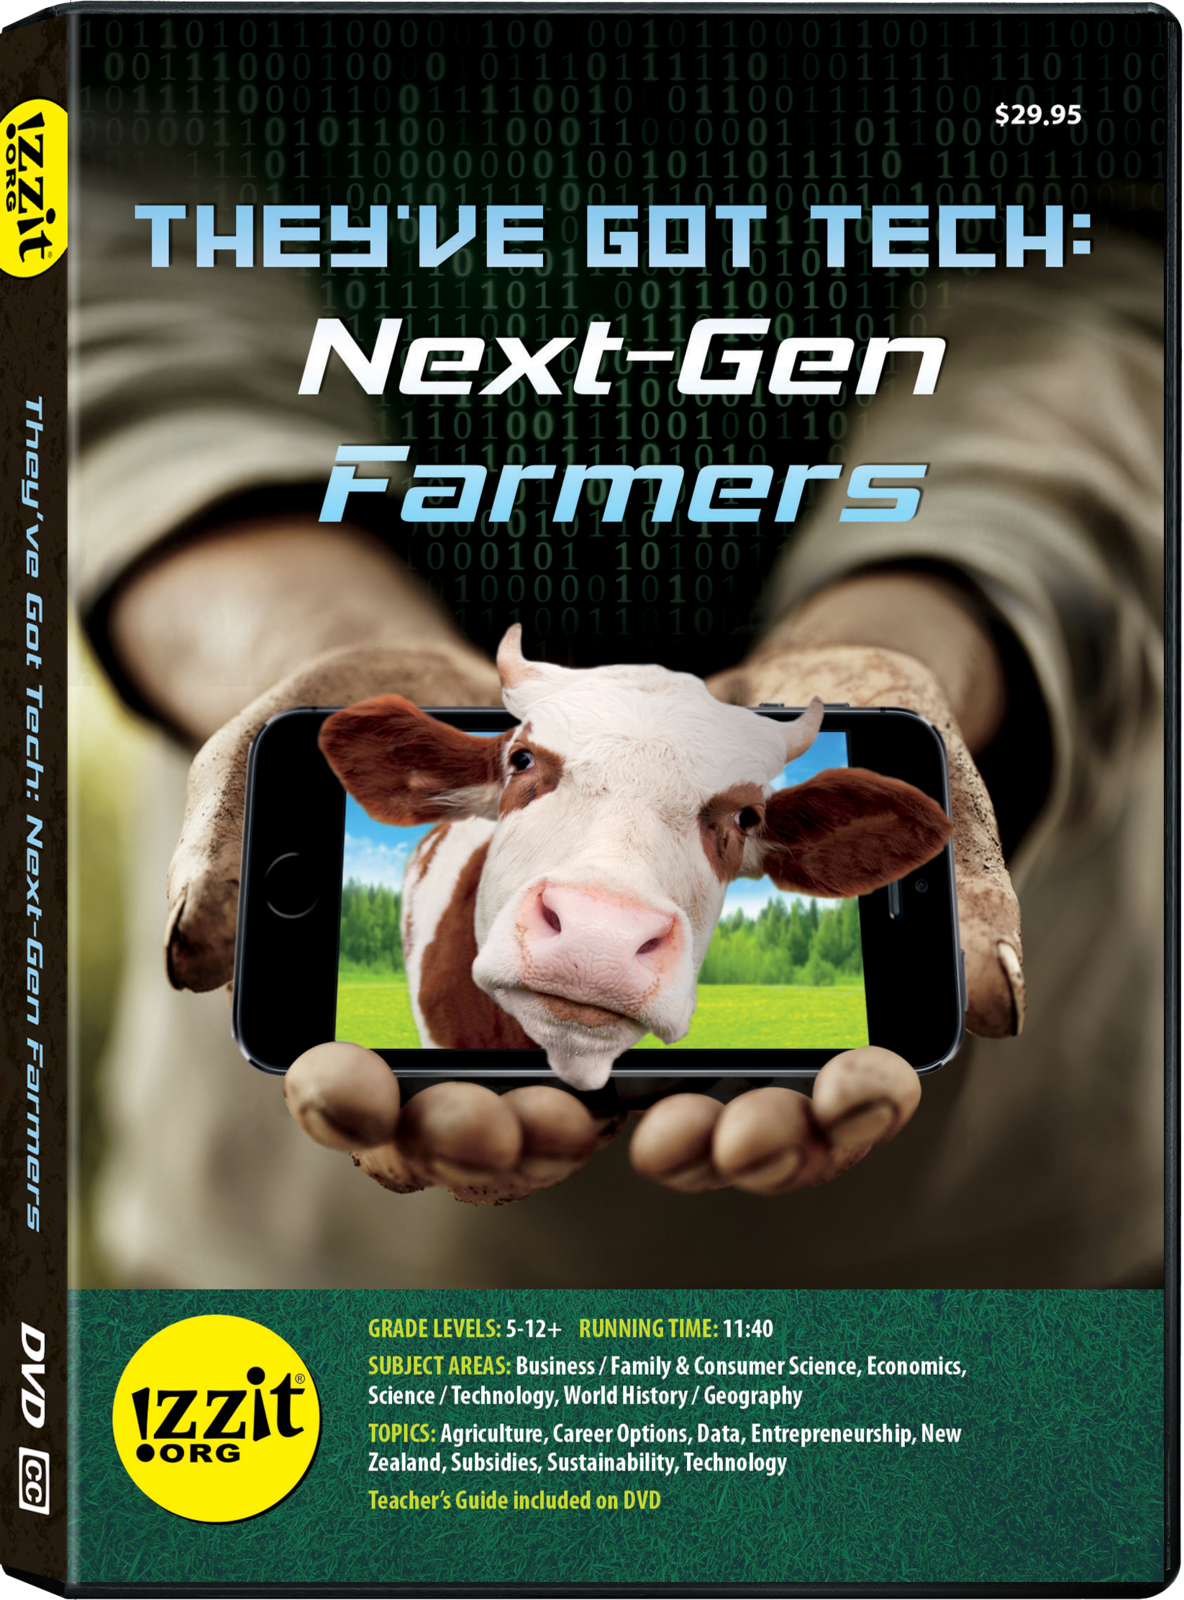 They've Got Tech: Next-Gen Farmers